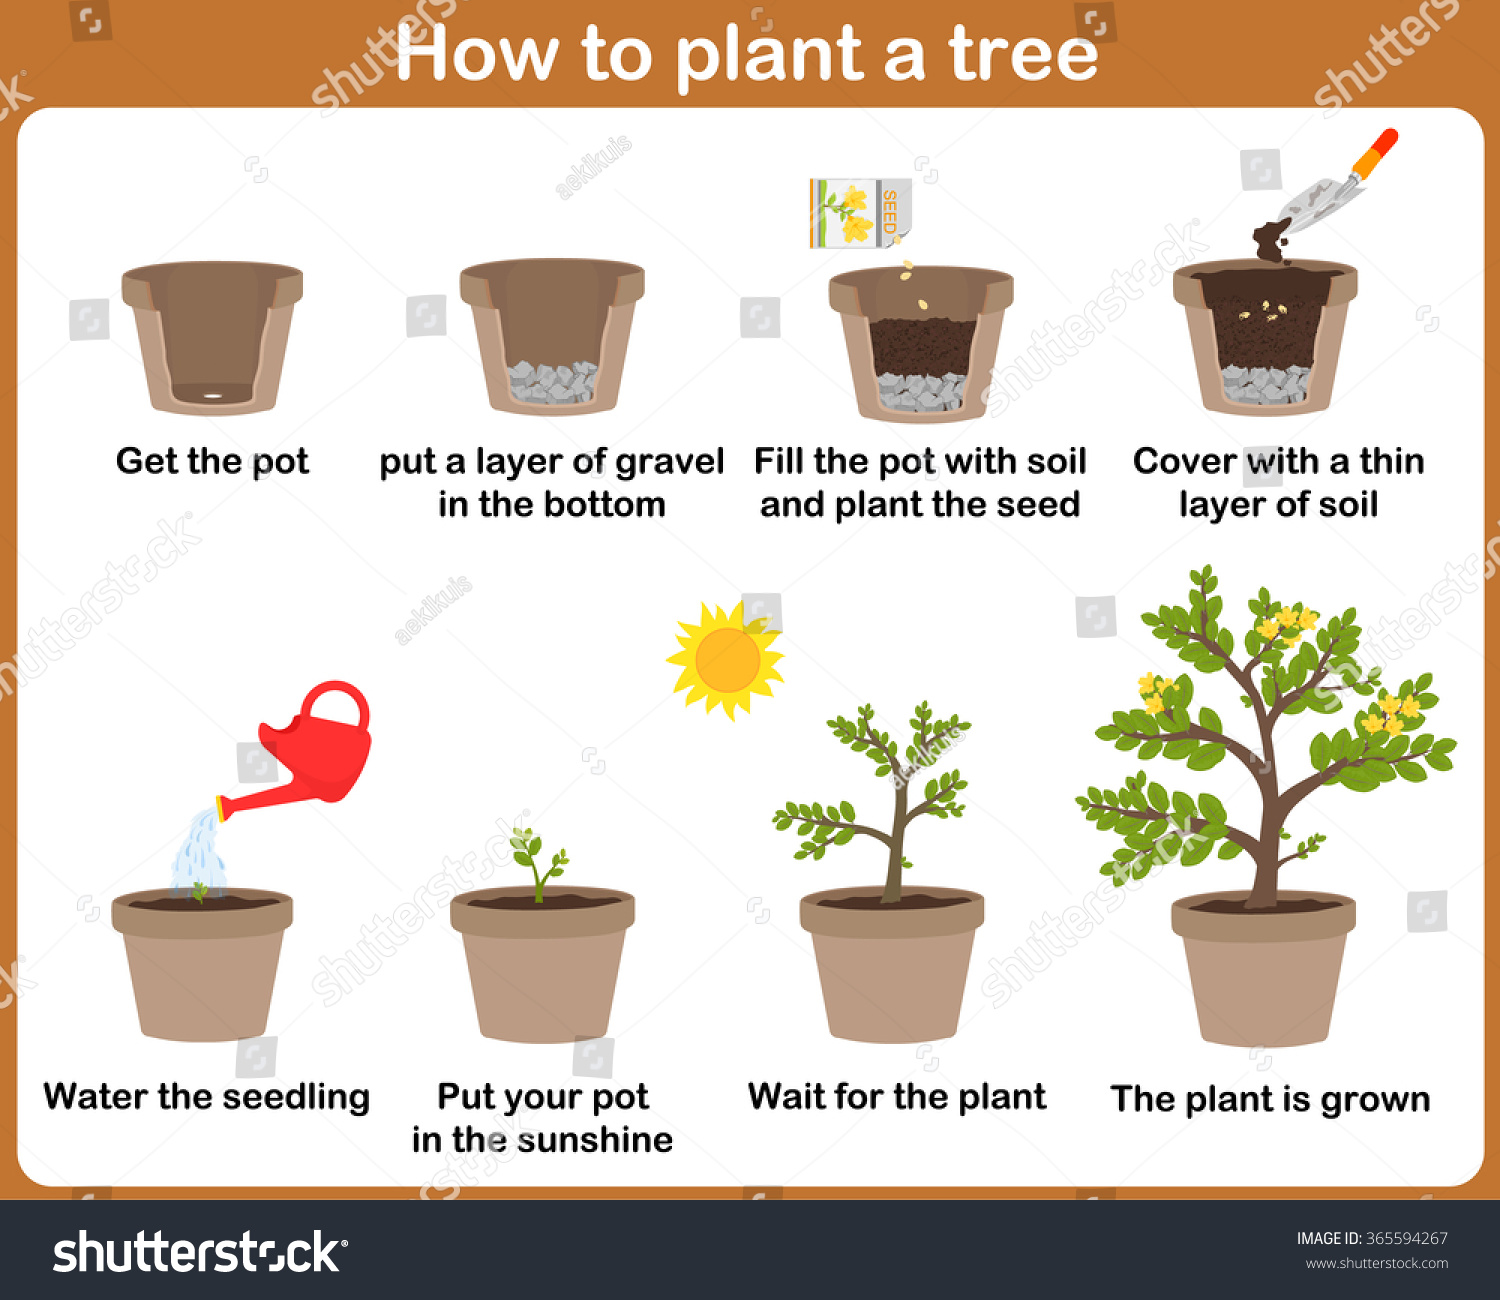 Four Stages Of Growth Shown By Plants Growing In Pots Manual Guide